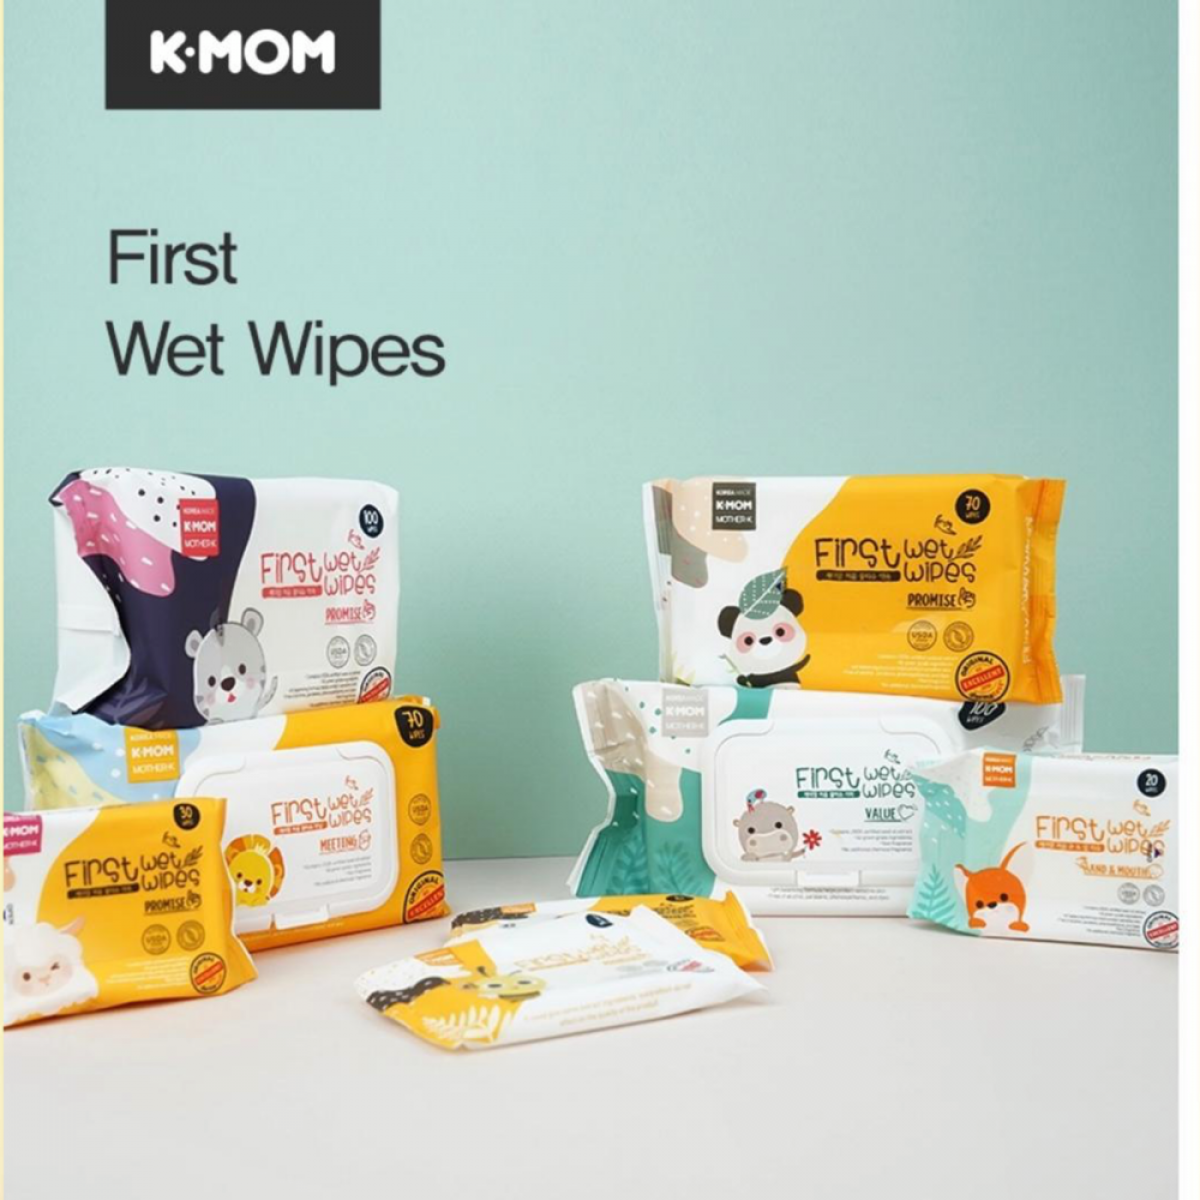 K-MOM Organic First All Purpose Surface Wet Wipes - 40pcs